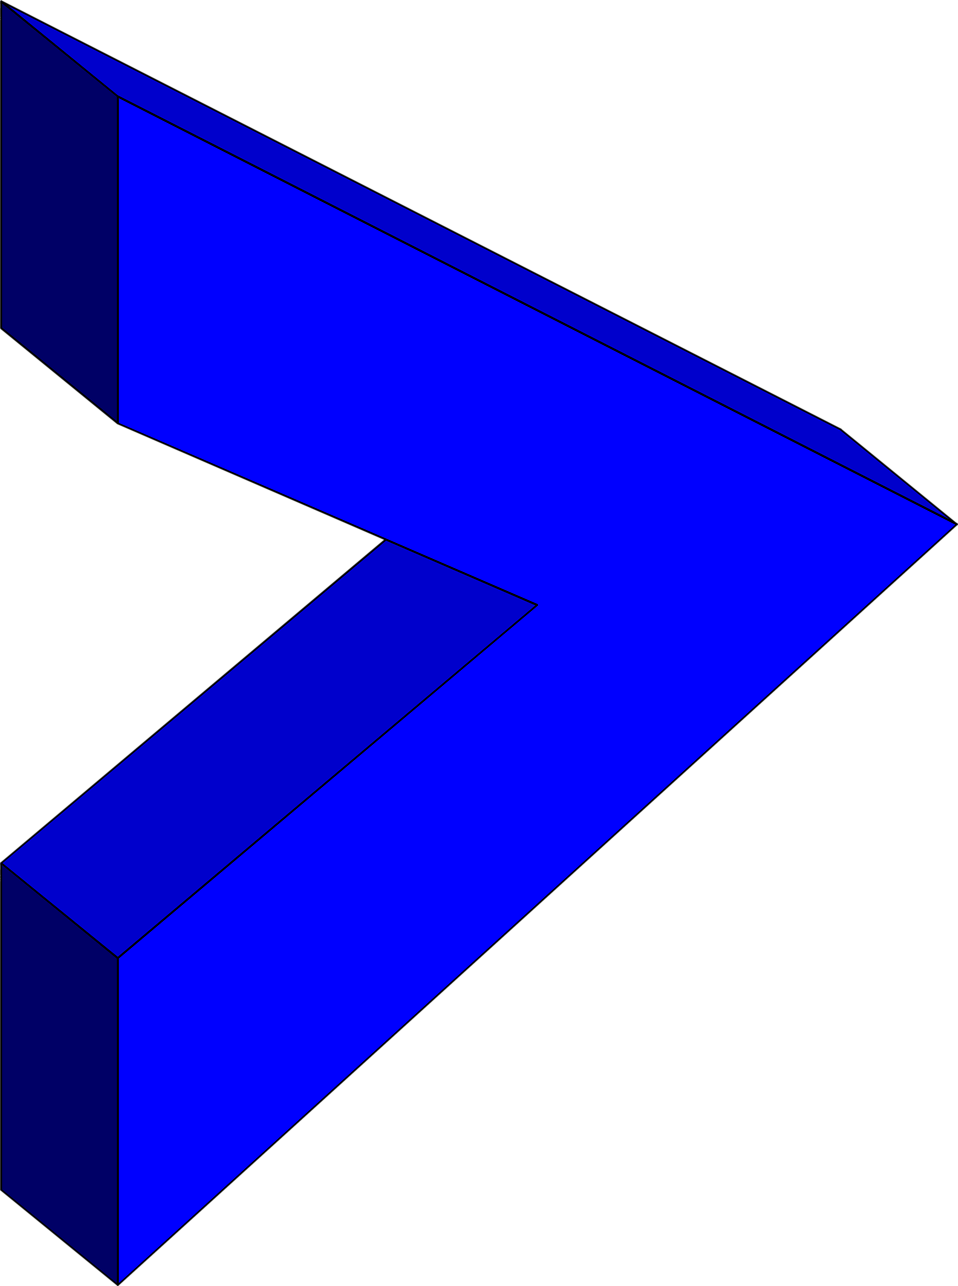 Illustration of a 3d blue right arrow : Free Stock Photo